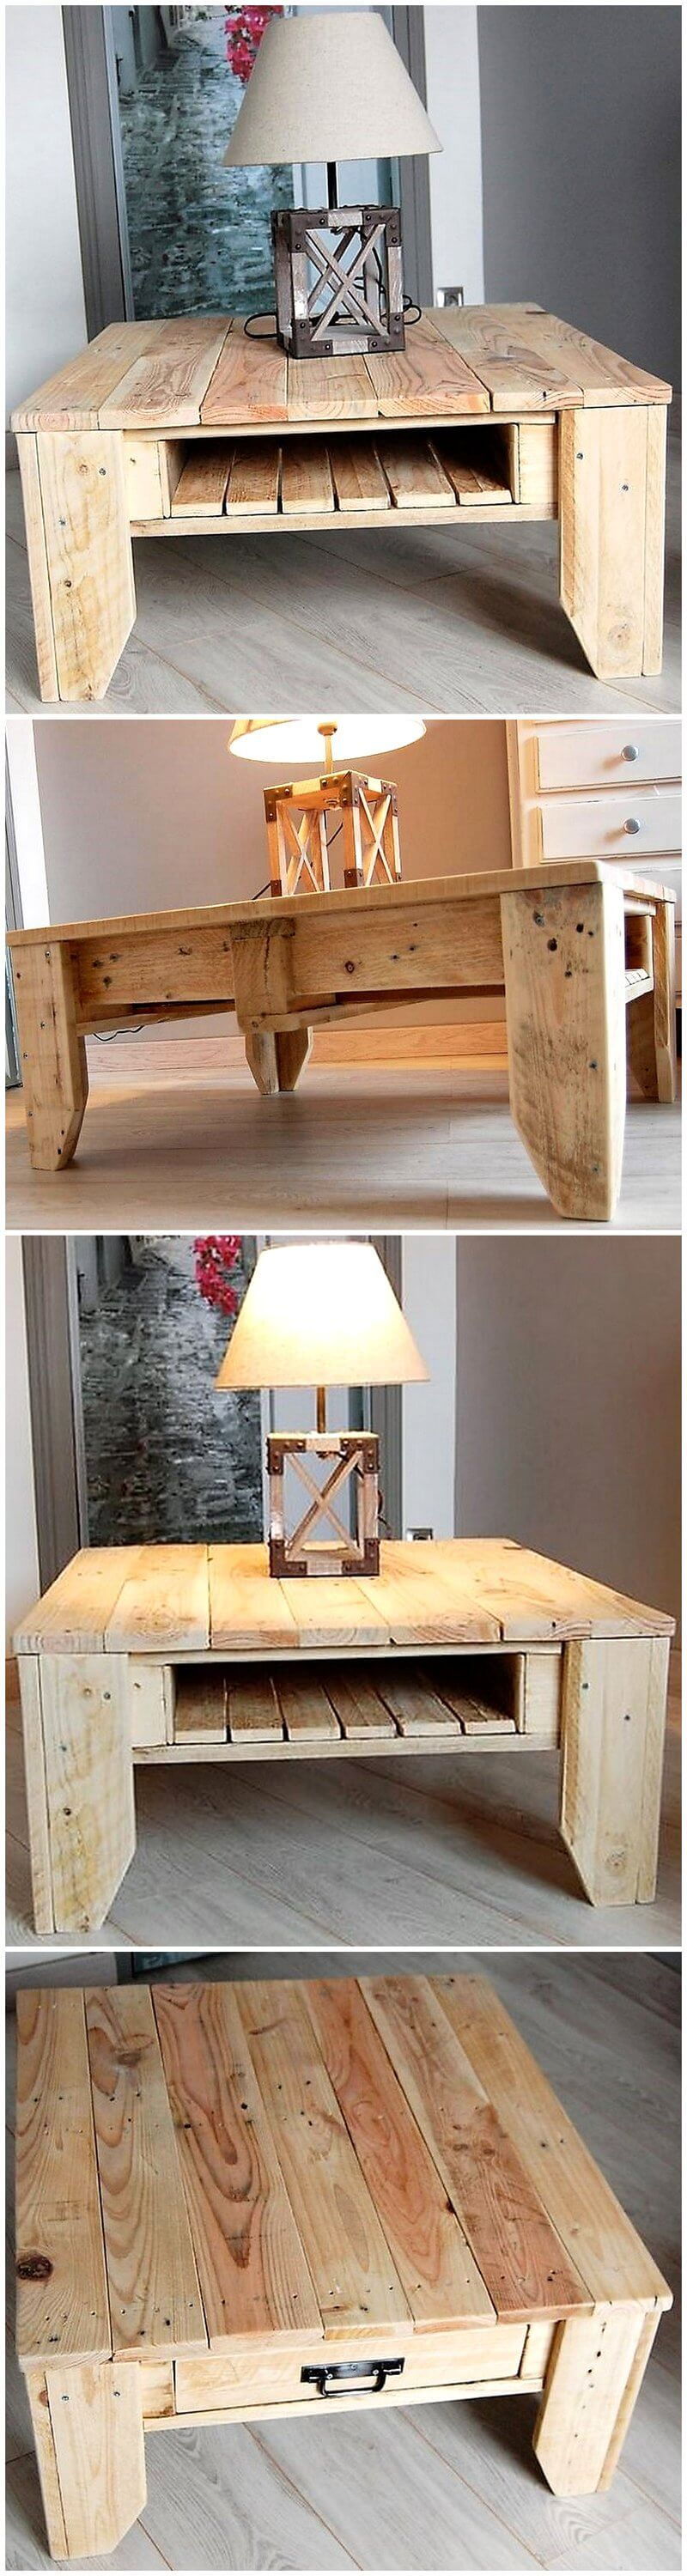 recycled pallet wooden table